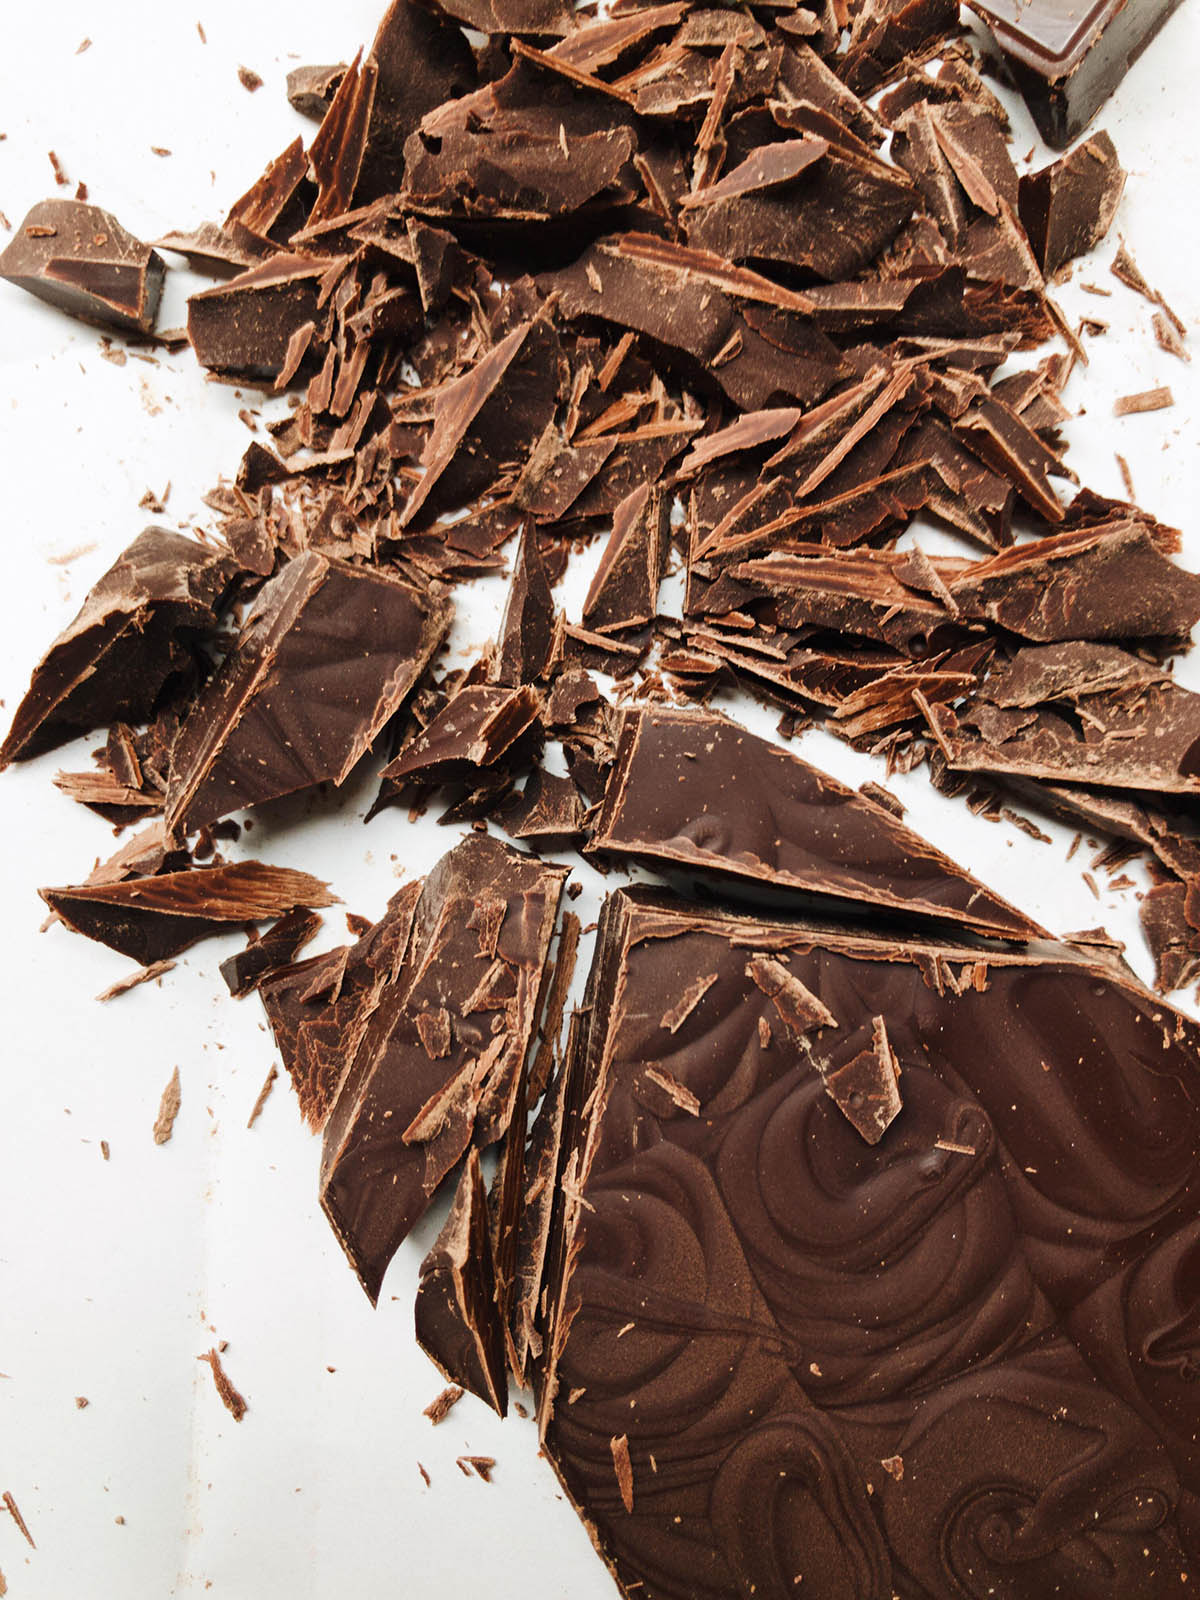 A bar of dark chocolate, partly chopped.